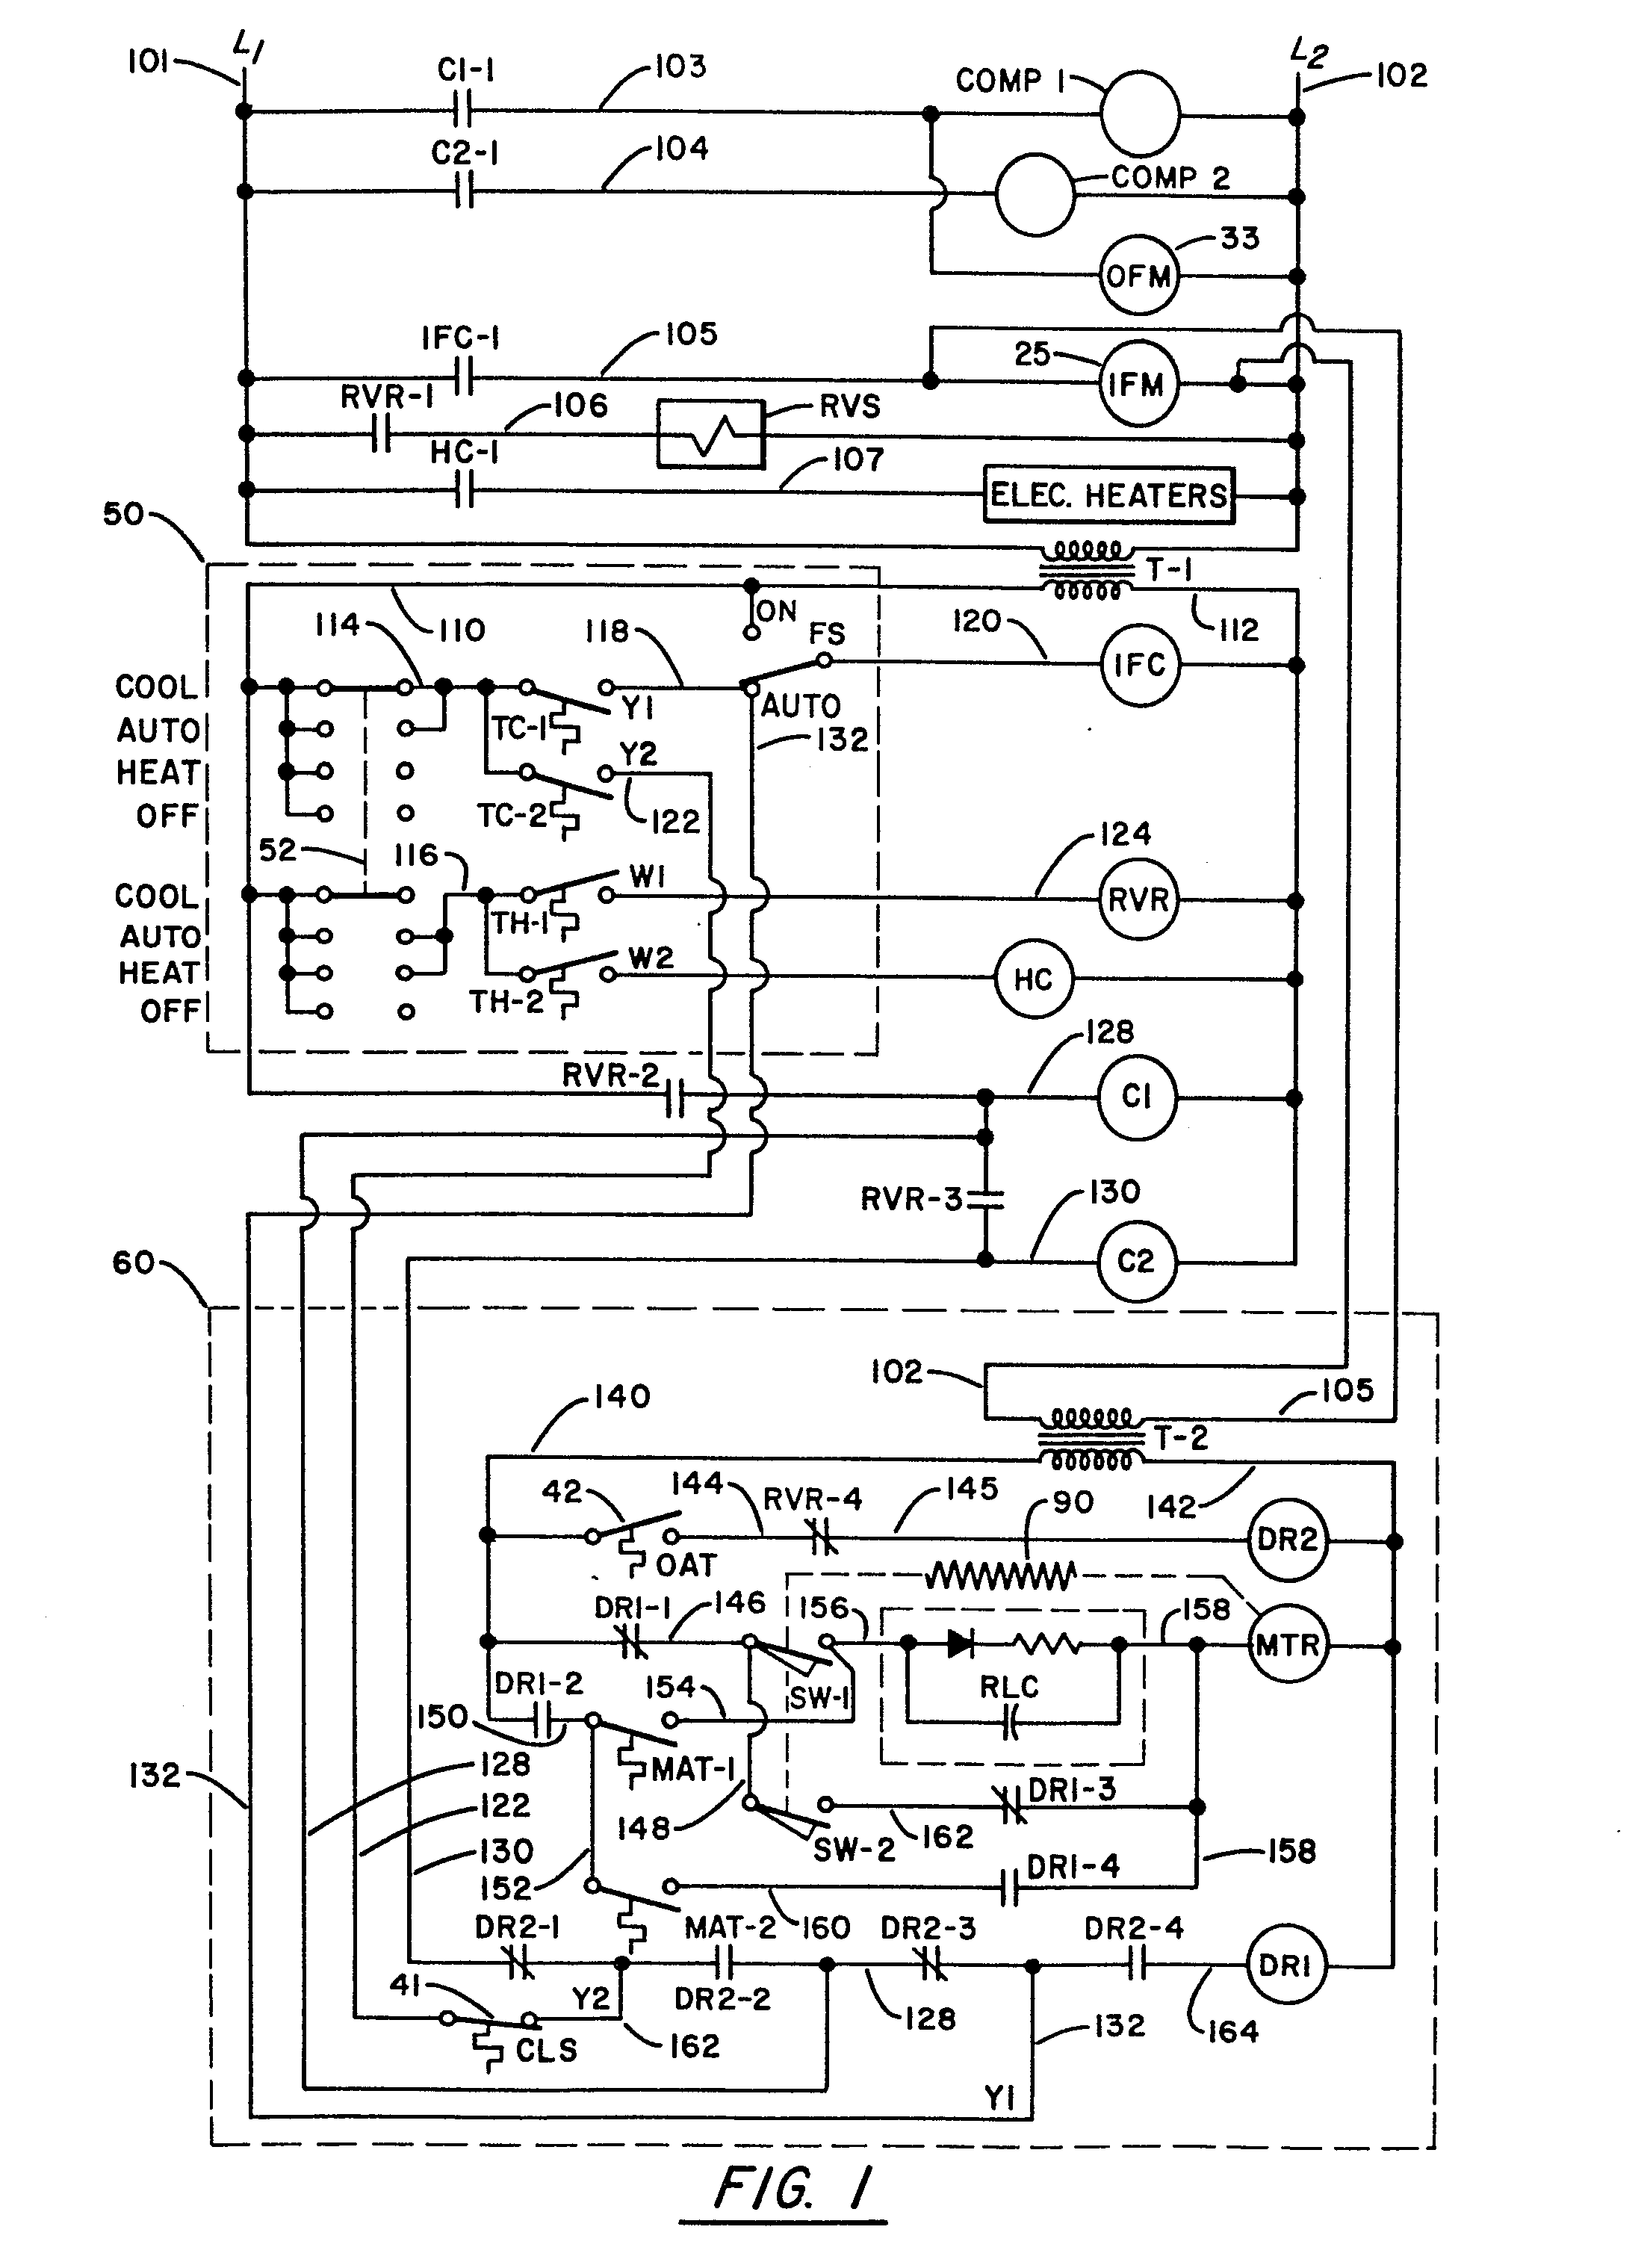 Trane Xl14i Wiring Diagram